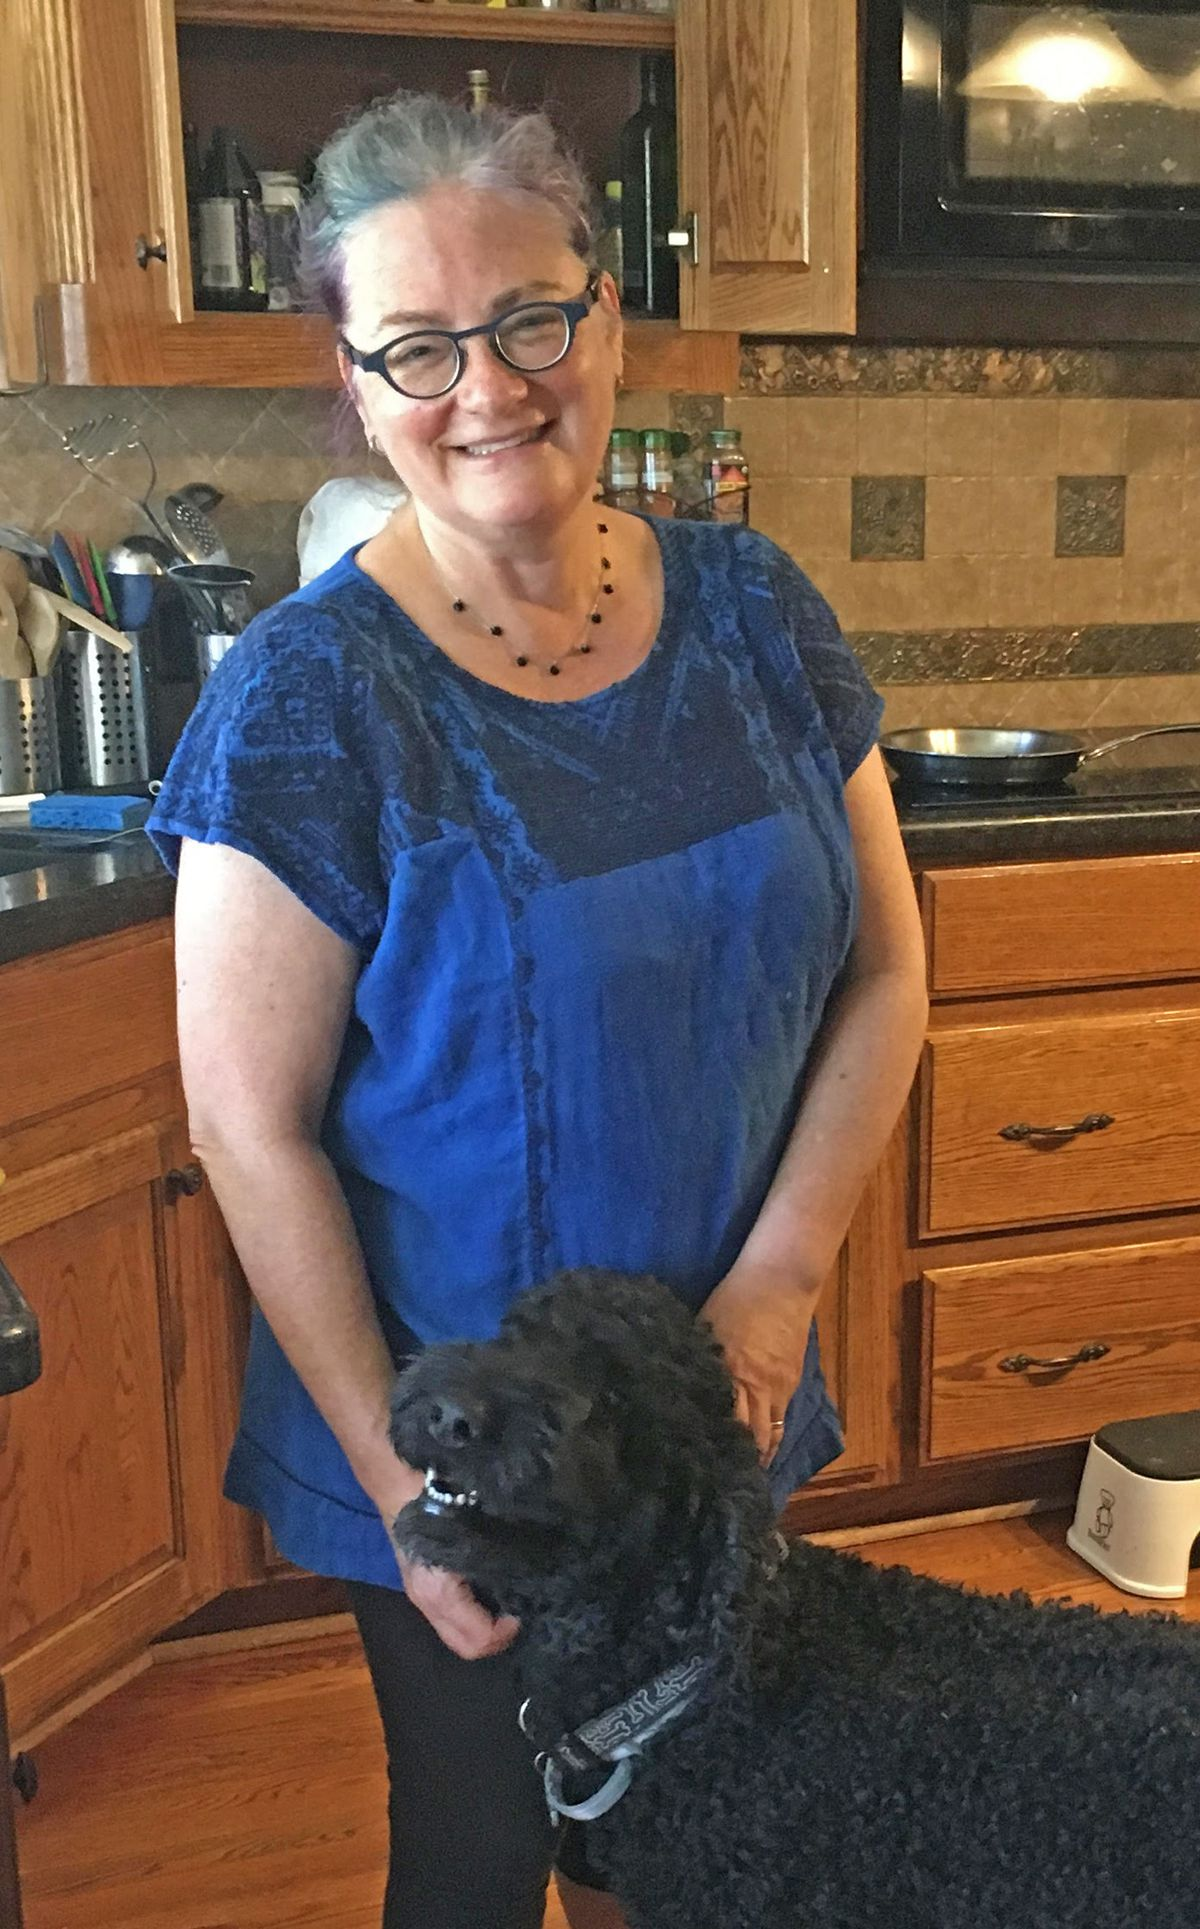 Hannele Rubin, here with dog Rufus, attended Northwestern University's Medill School of Journalism, and now teaches at Texas A & M University in College Station.   Maudlyne Ihejirika   Sun-Times